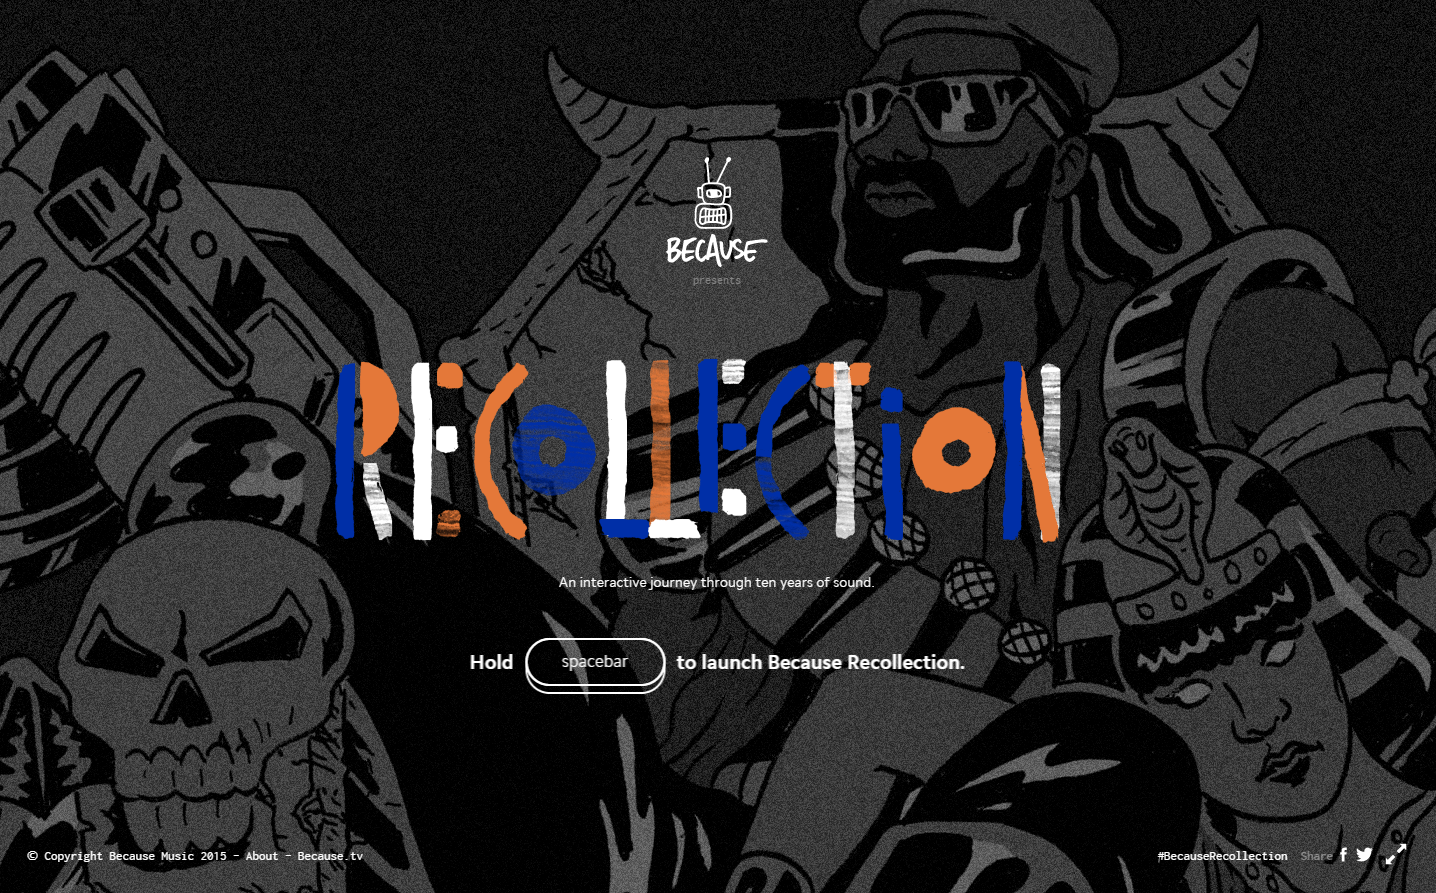 http://www.because-recollection.com/